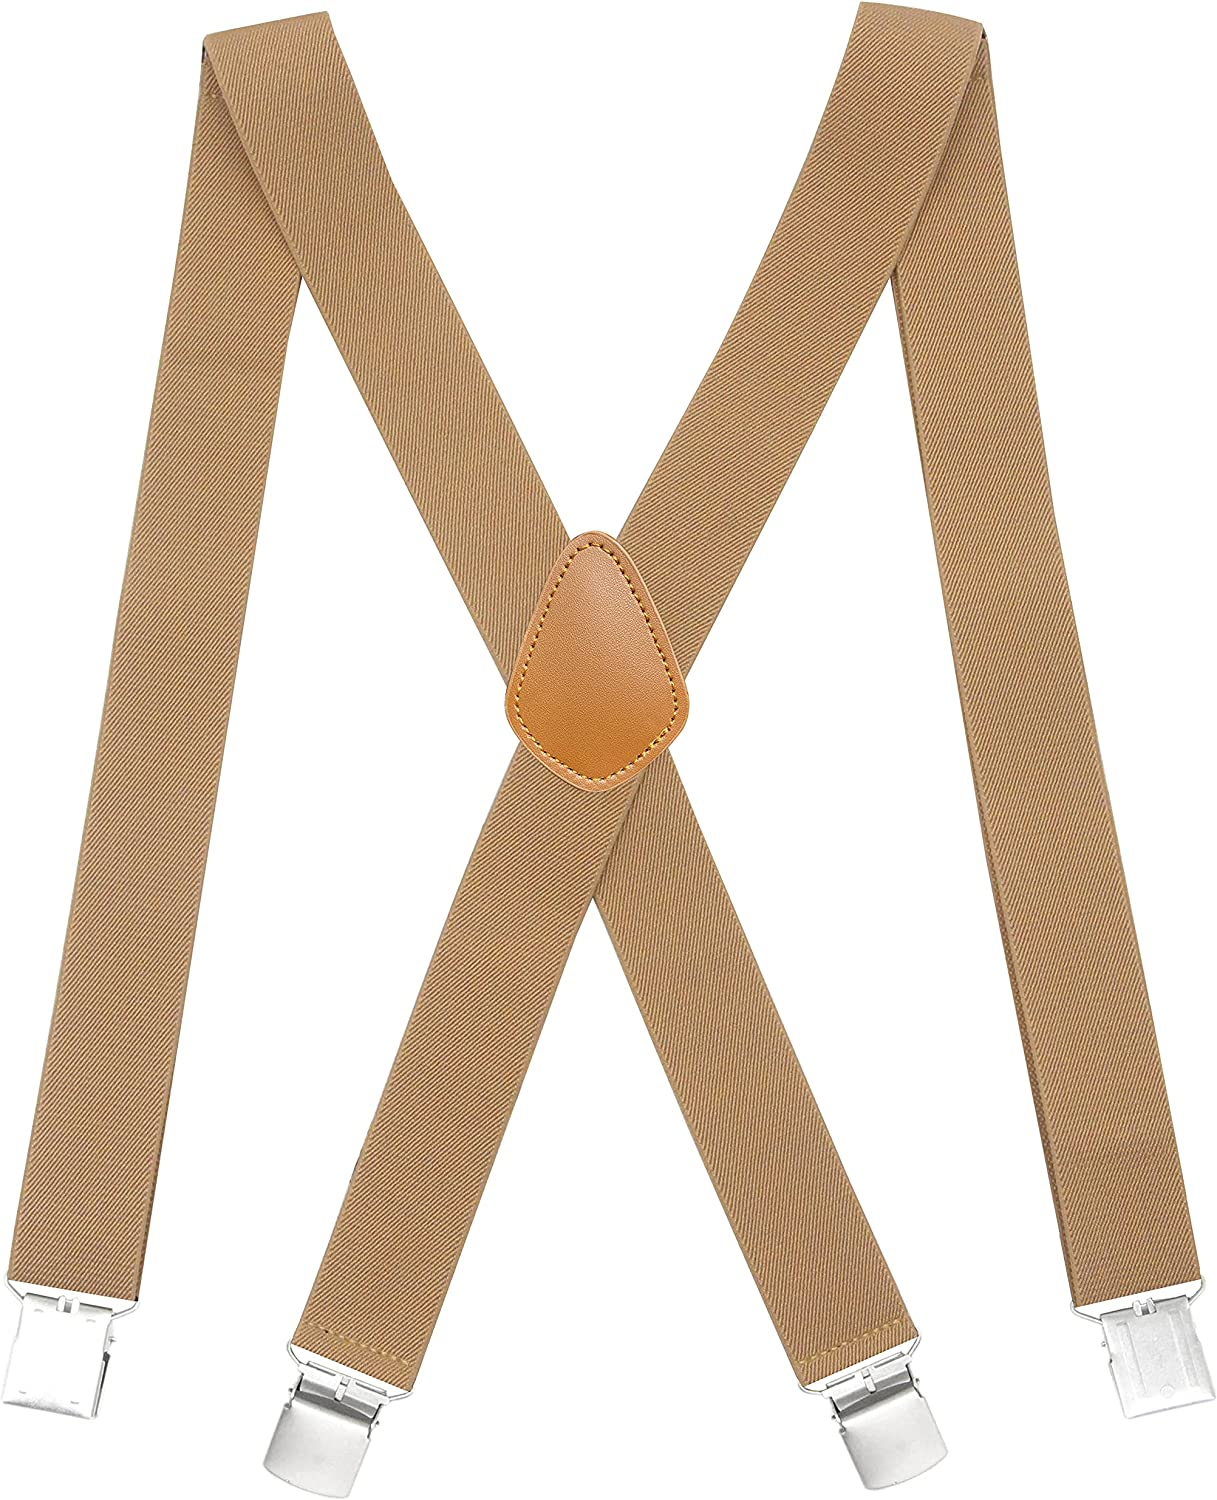 Cedrainy Men's Suspenders X Back With 1.4 Inchs Wide Elastic Braces & Heavy Duty Clip